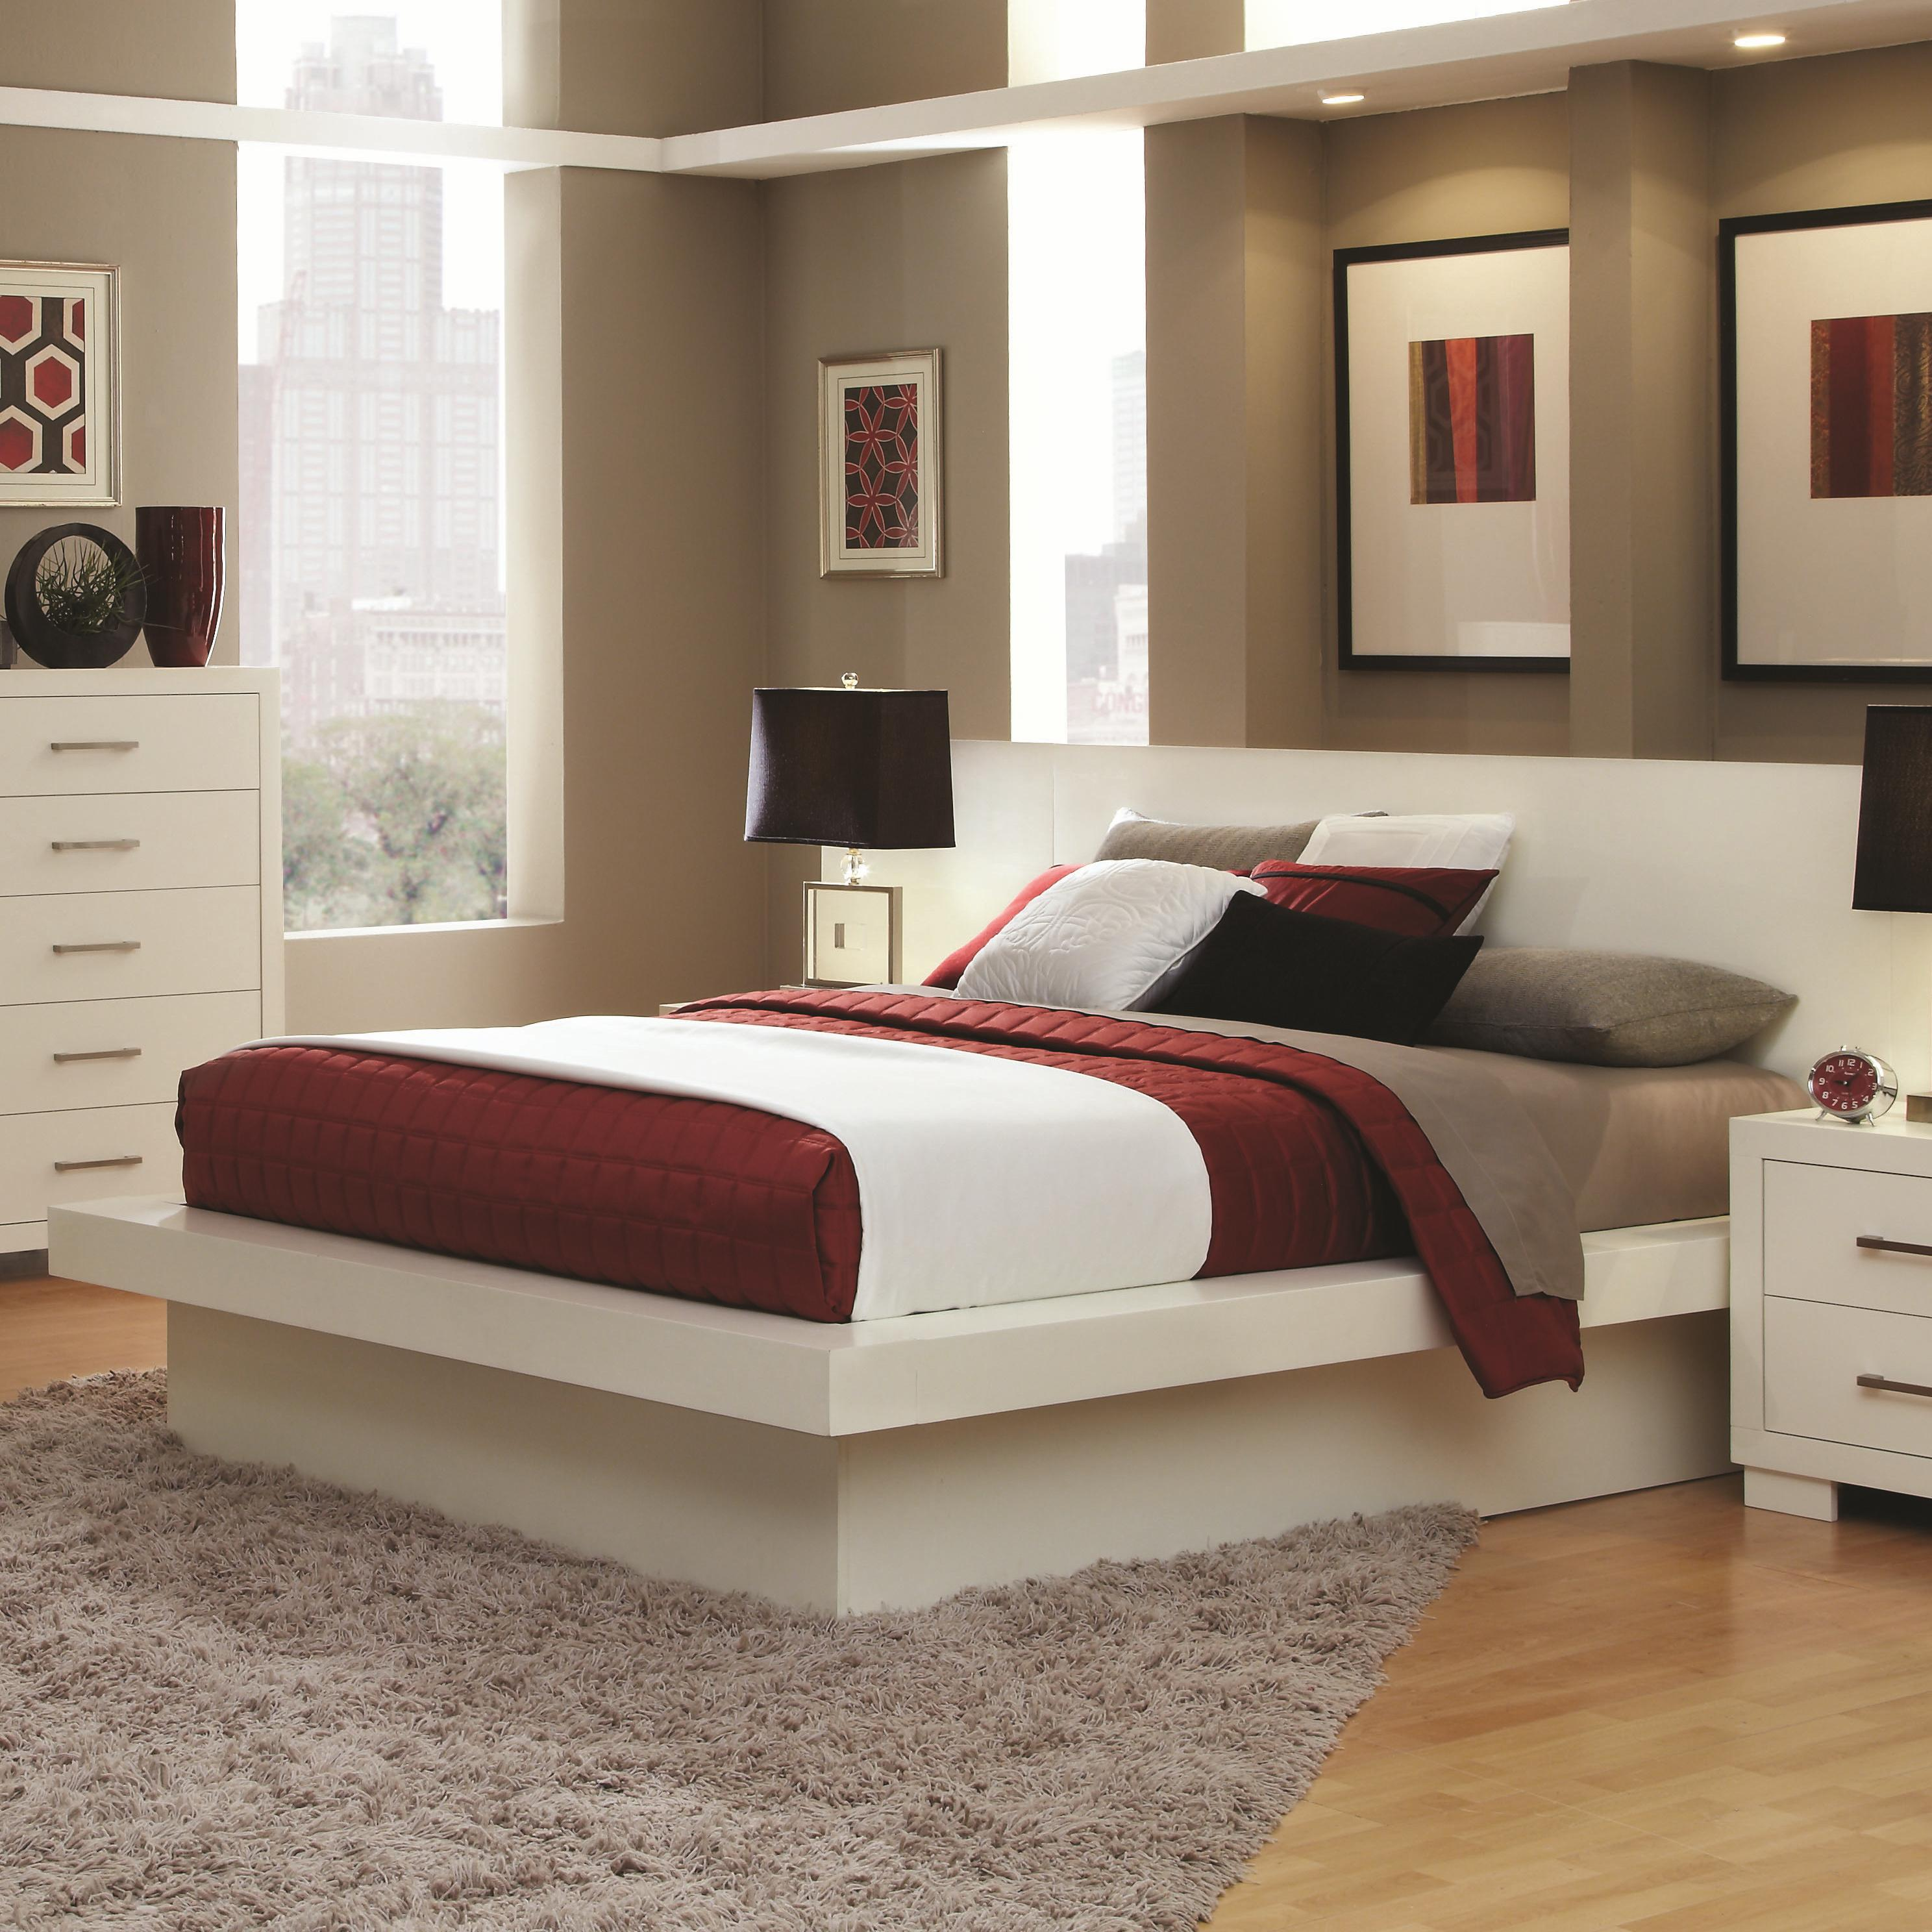 Fullsize Of White Platform Bed